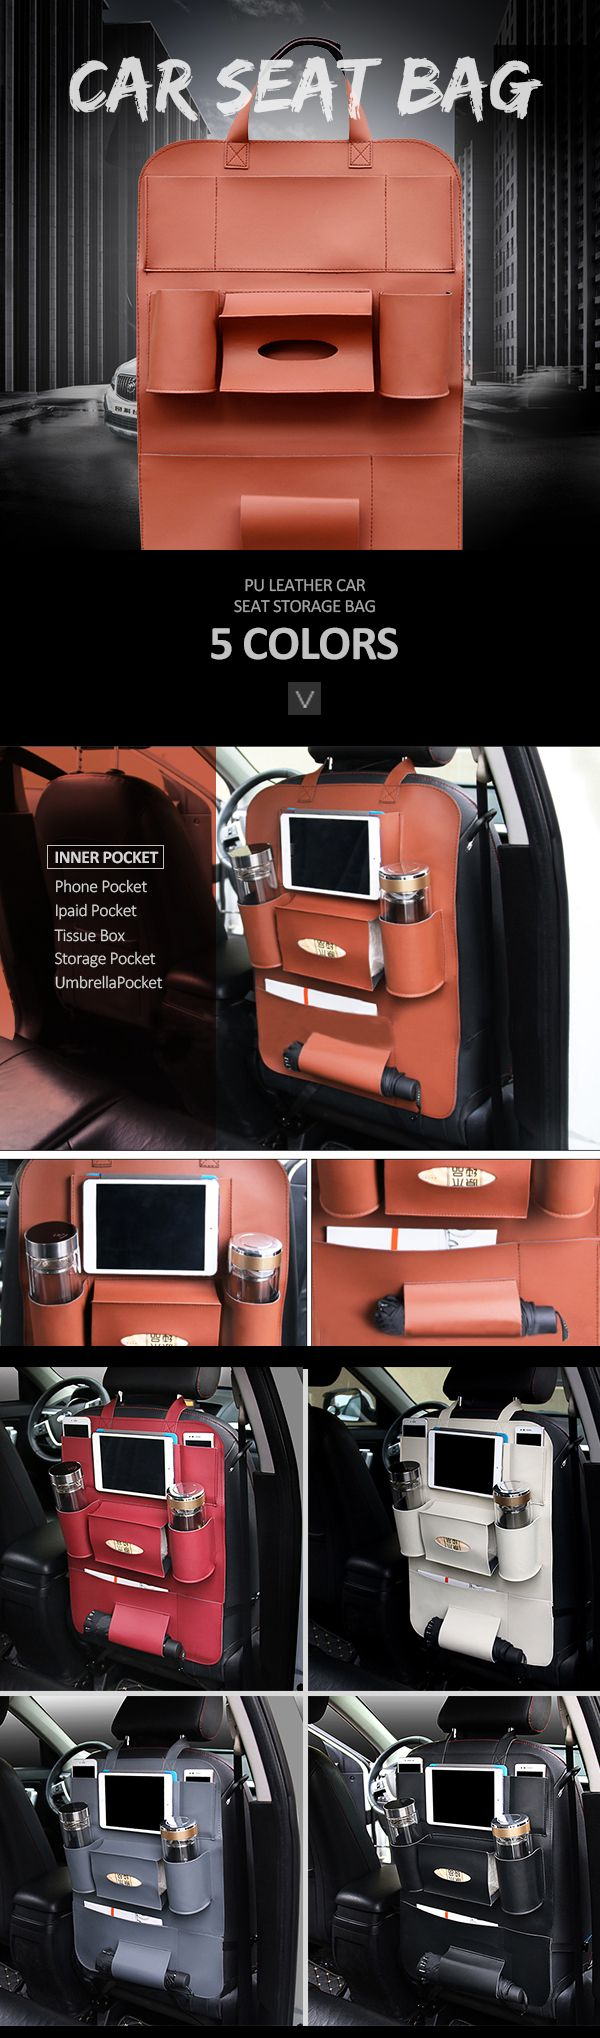 US$15.99 Pu Leather Car Seat Storage Bag_ 5 Colors Travel Solid Hang Bag